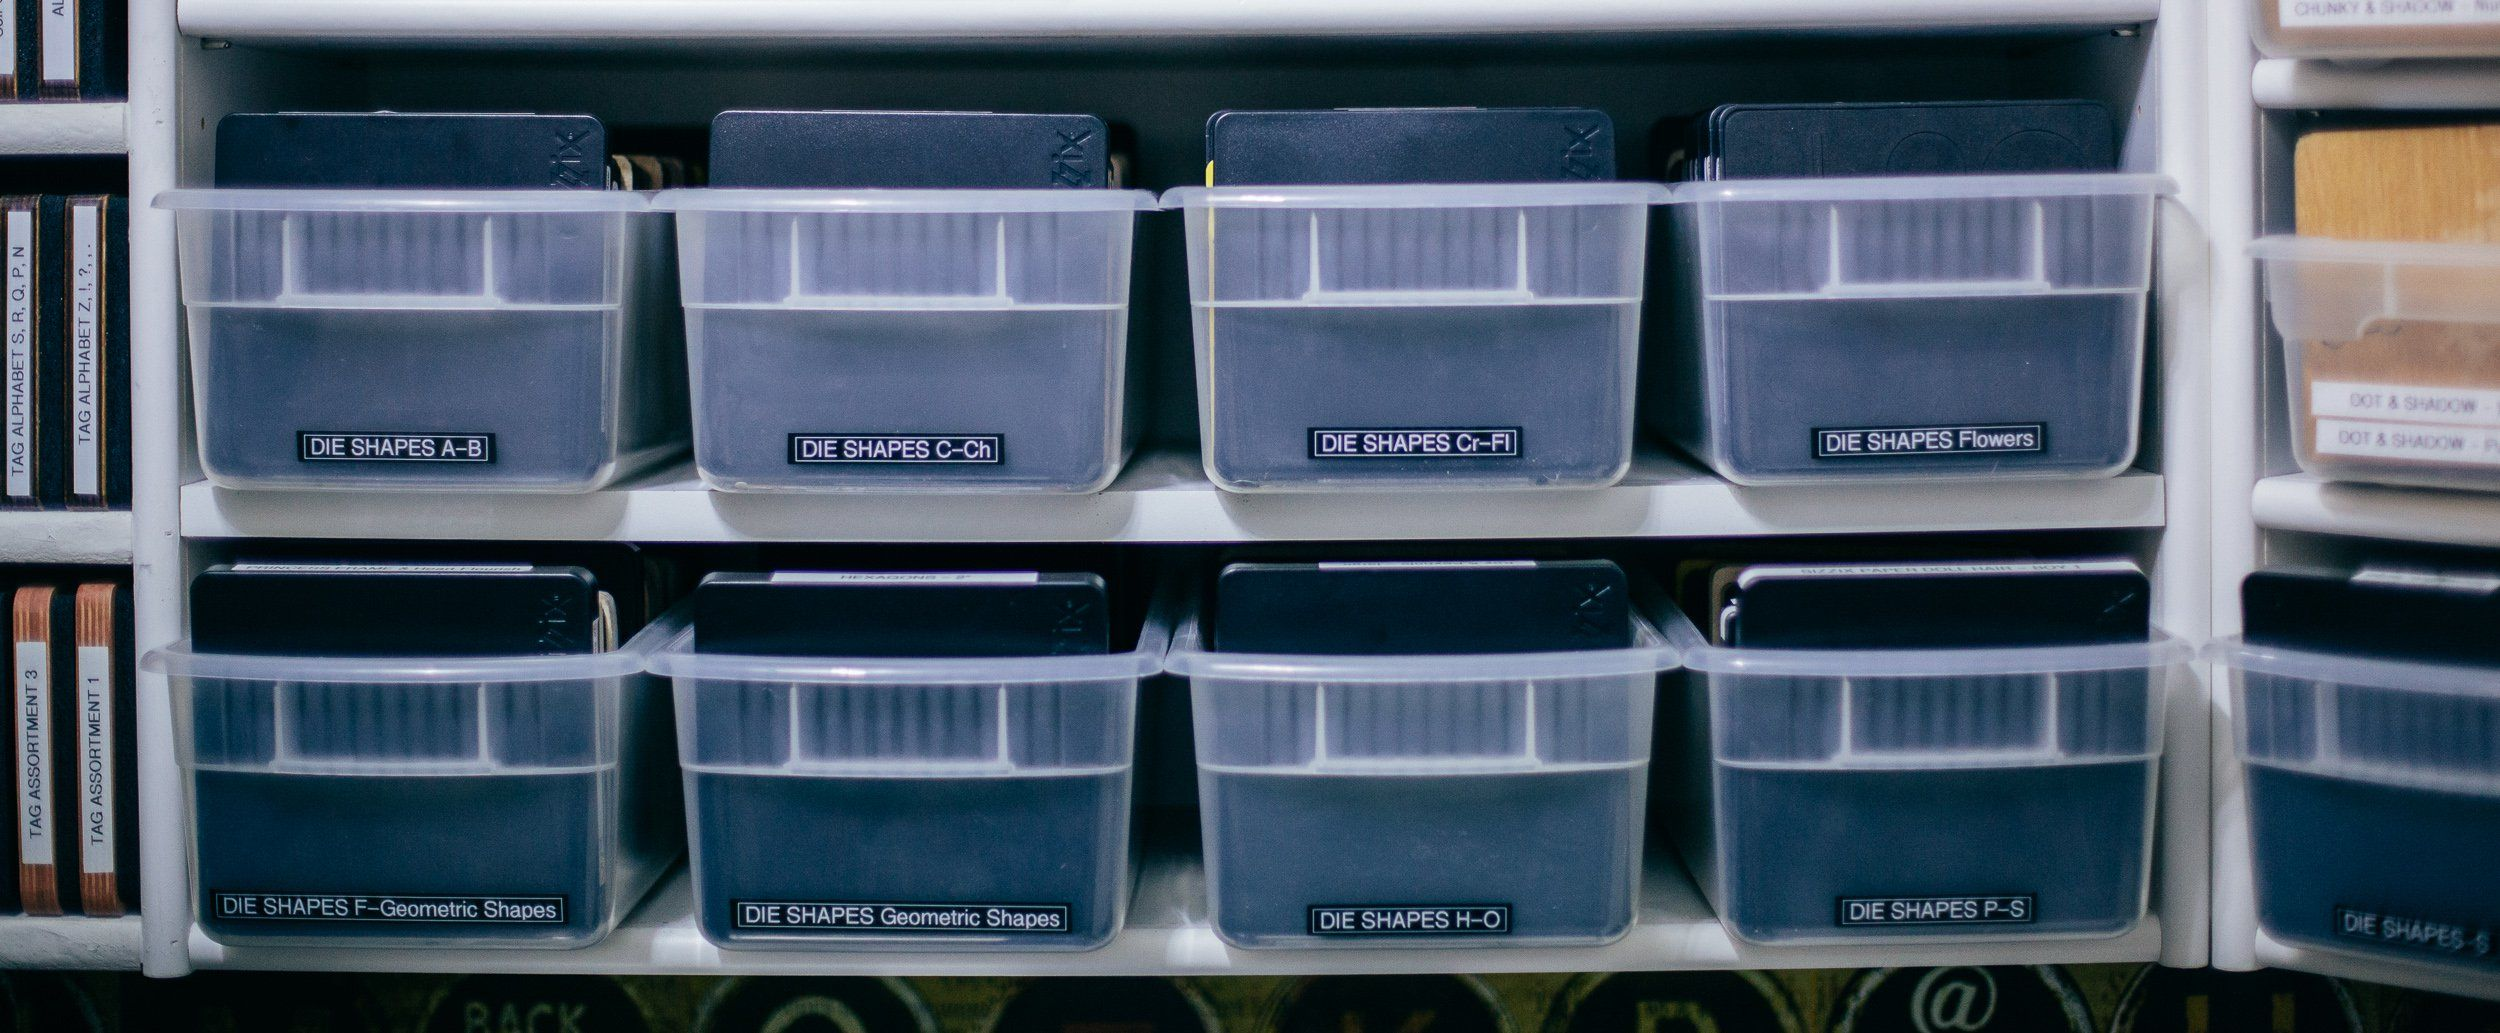 This Is How I Store And Organize My Large Dies